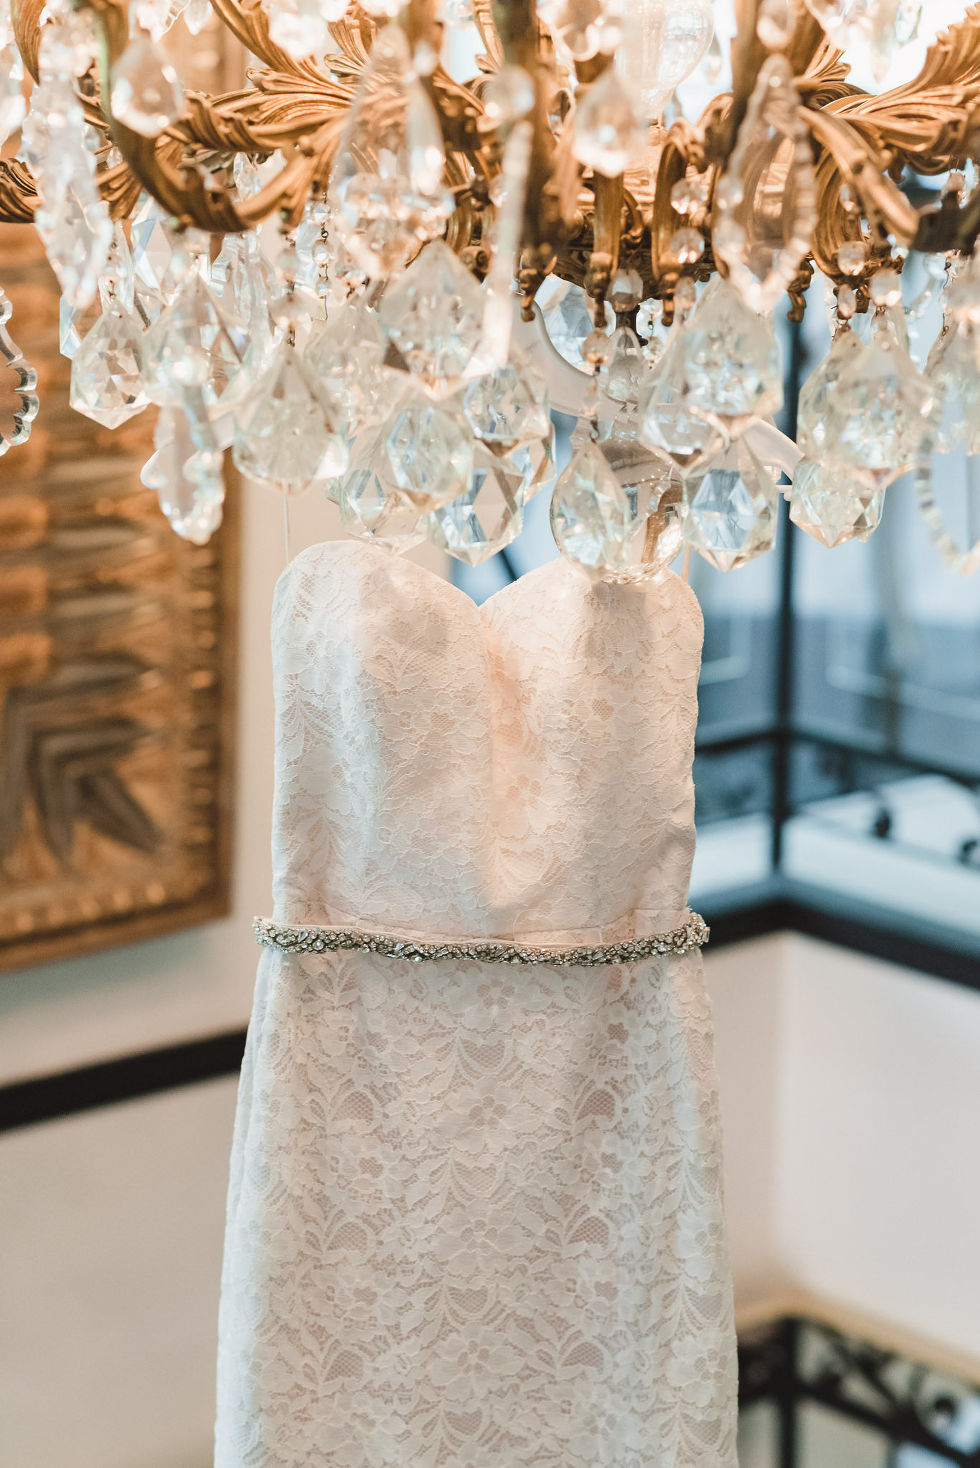 brides white wedding dress hanging from gold and crystal chandelier before Parisian inspired wedding at La Maquette in Toronto Ontario